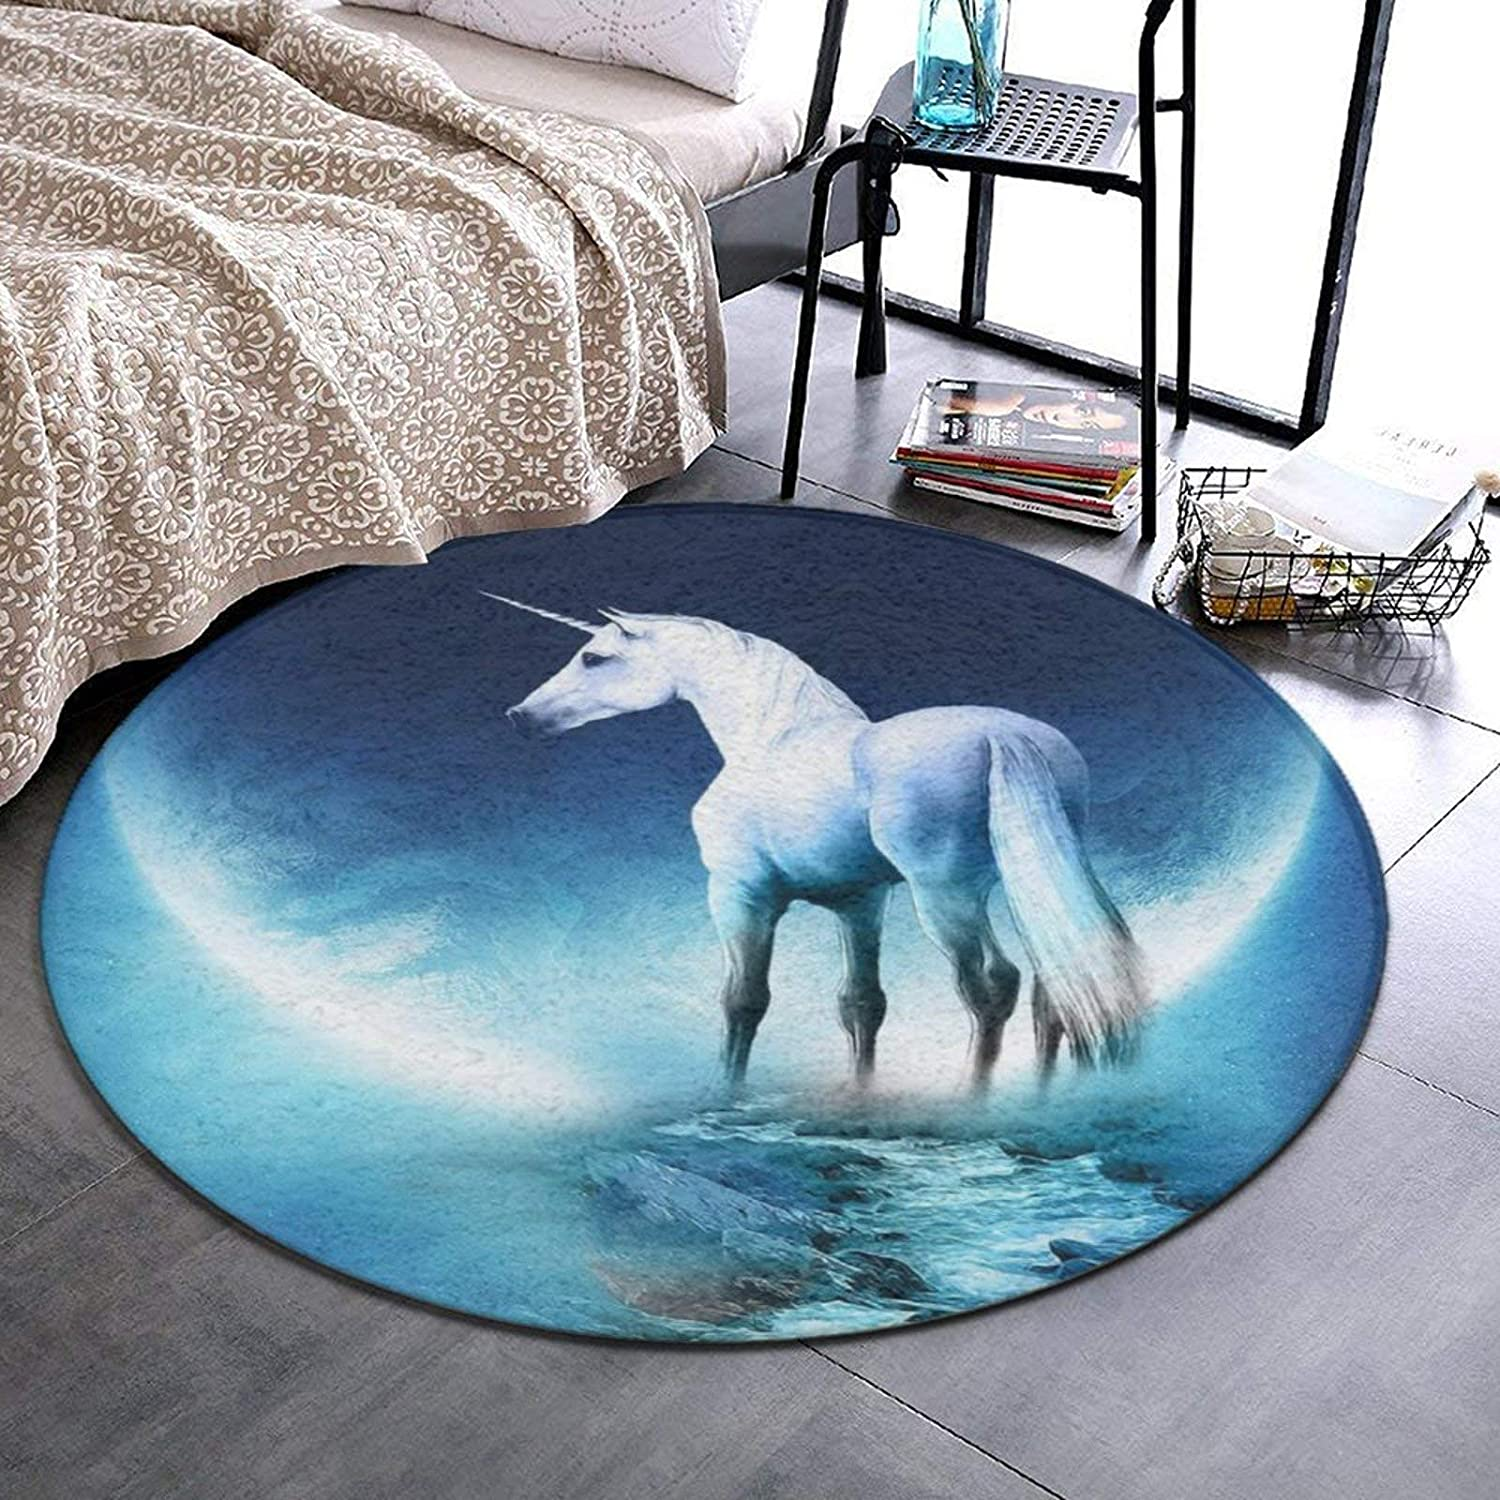 NiYoung Ultra Sale special price Soft Round Area Rugs Mat No 2021 autumn and winter new Floor Sofa Indoor